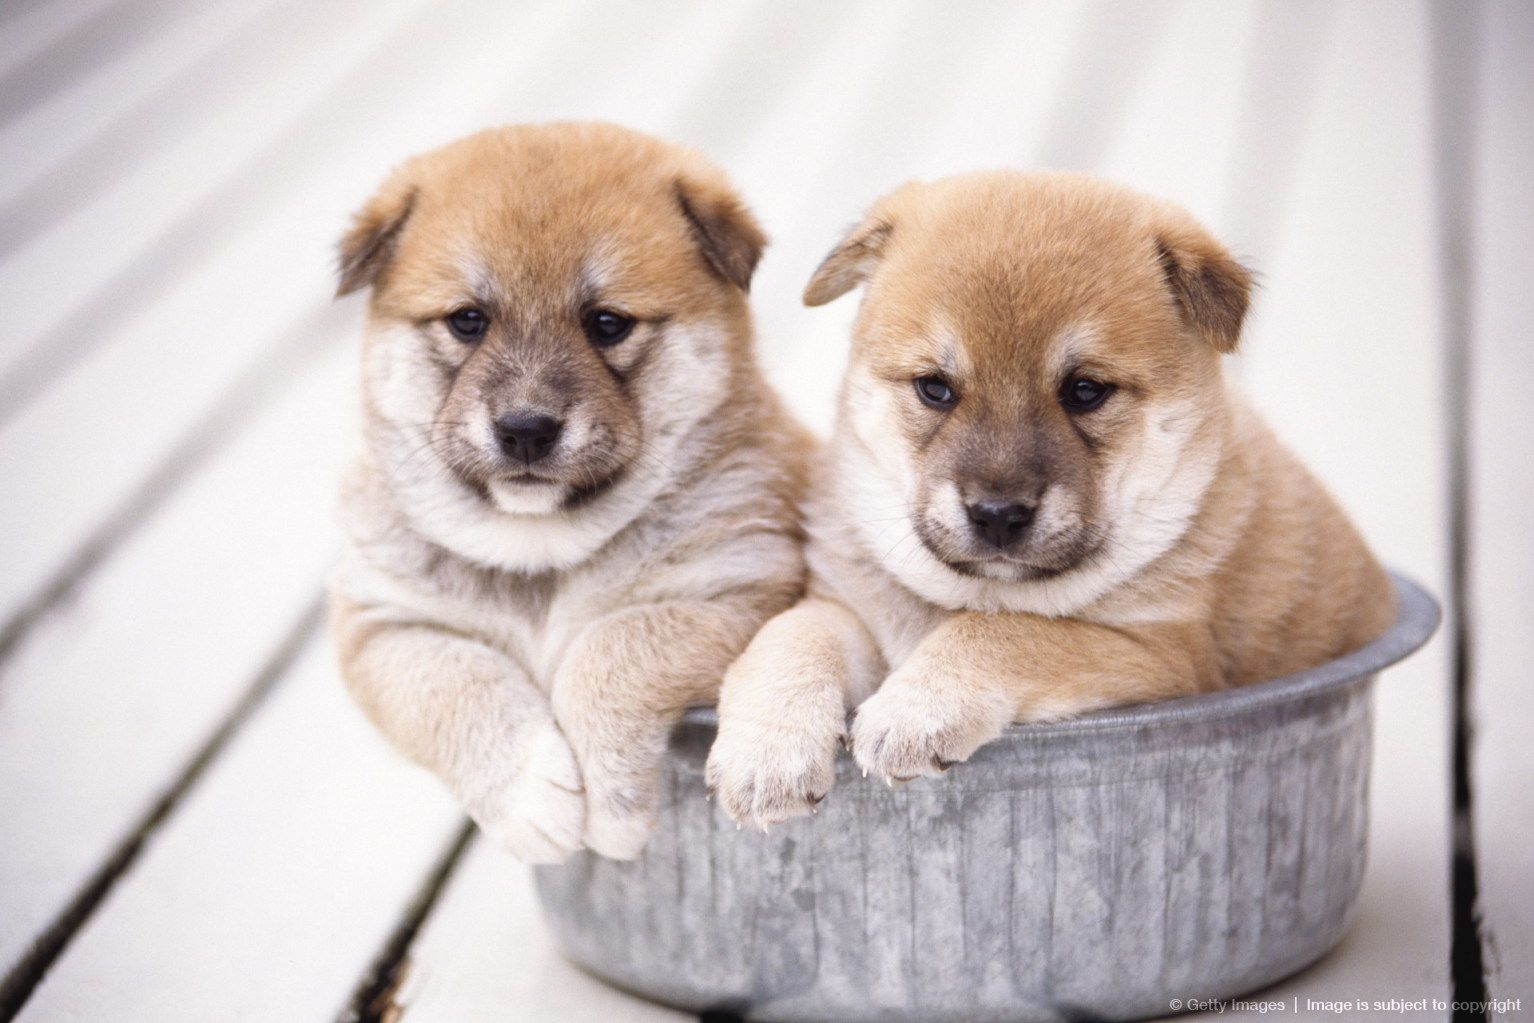 Image detail for Shiba Inu puppies in aluminum tub